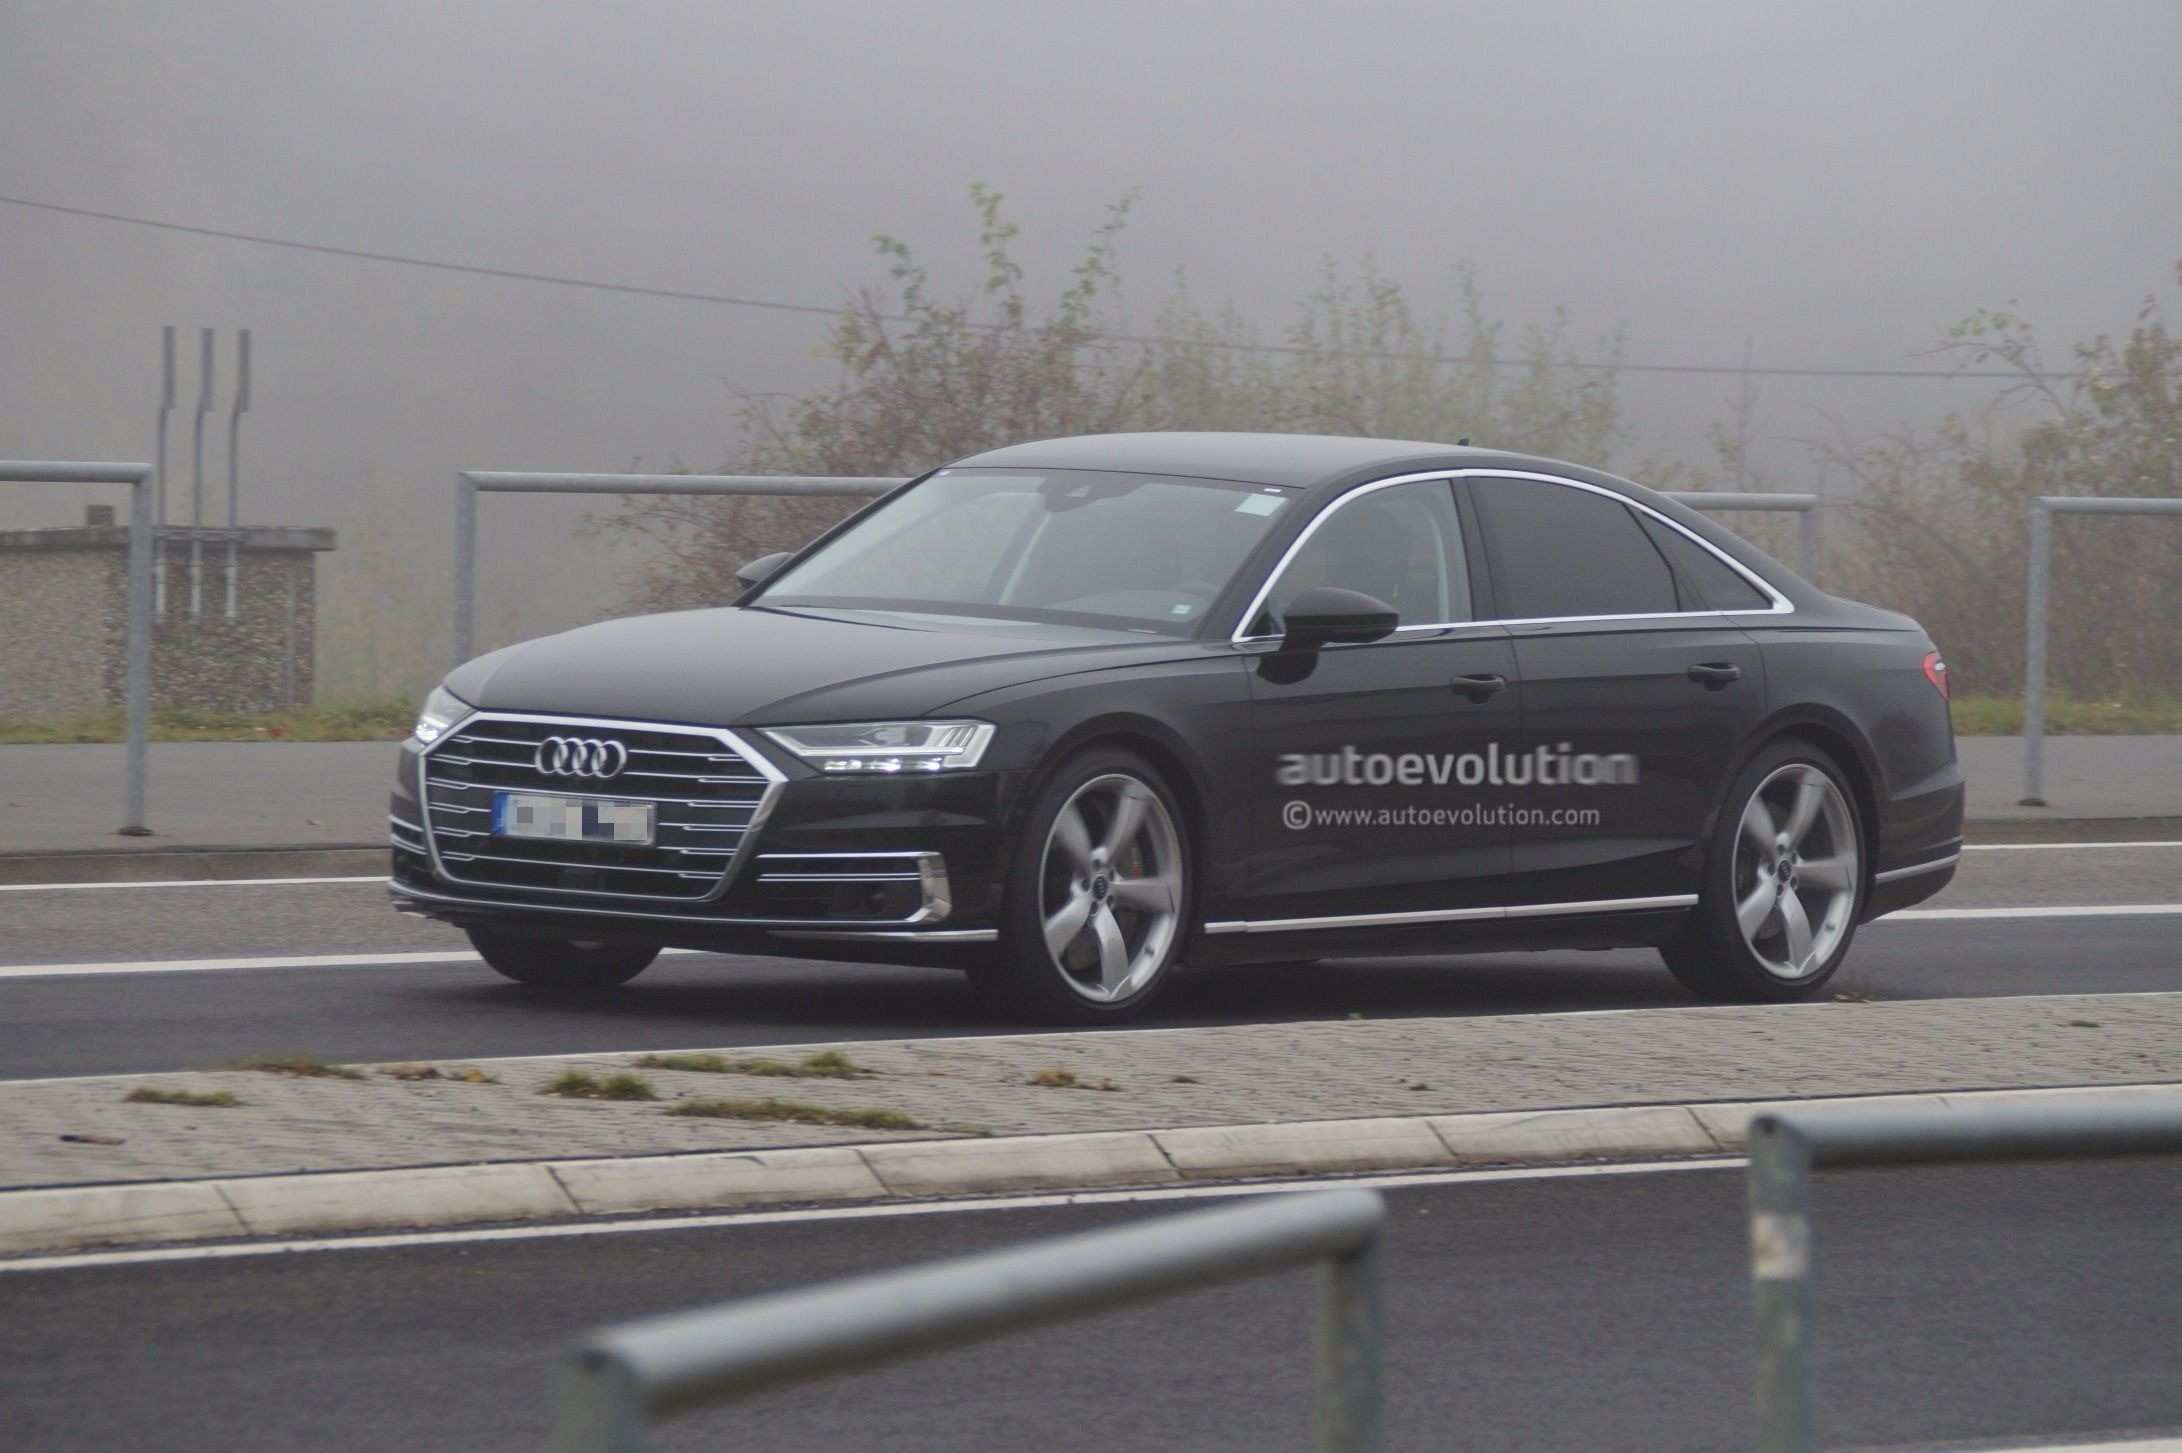 93 Great 2019 Audi S8 Plus Picture with 2019 Audi S8 Plus